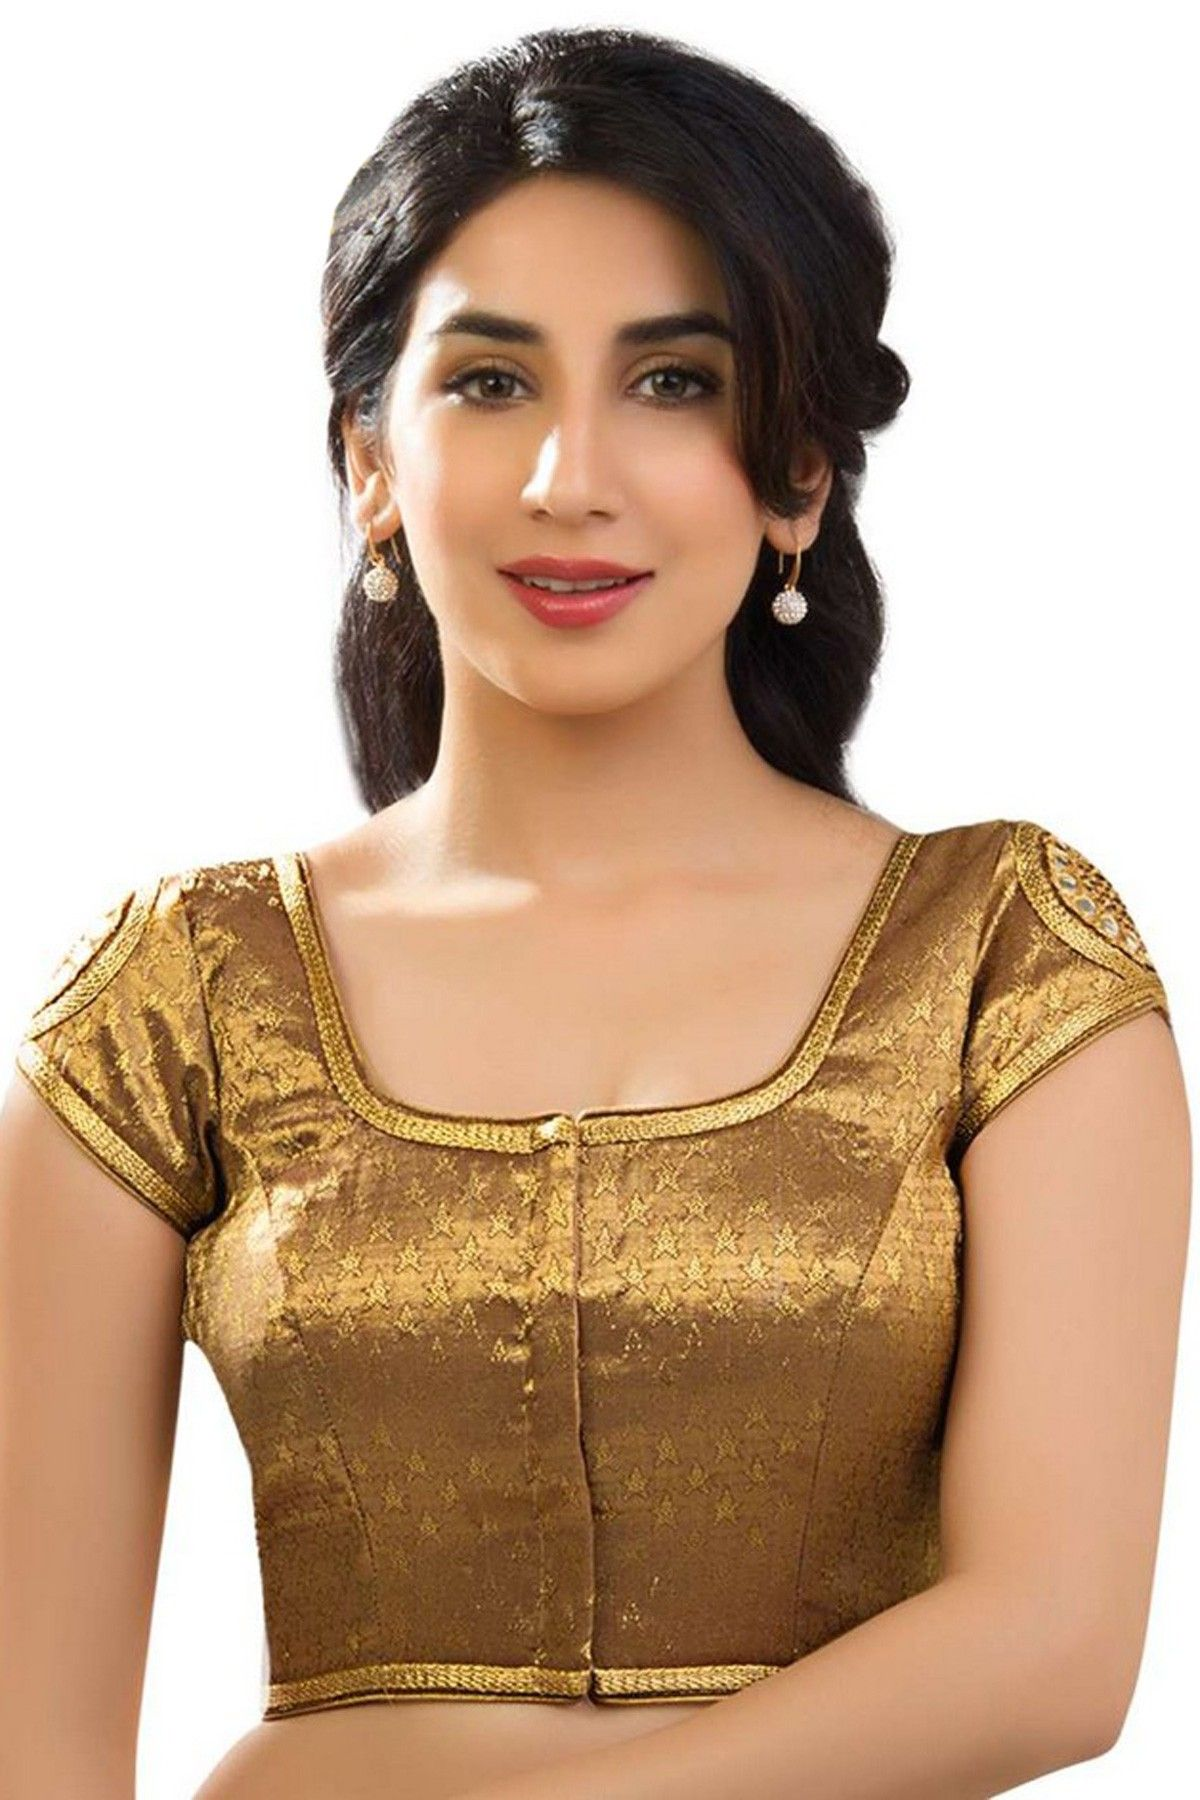 Beige golden brocade blouse blouse designs blouse designs for sarees - Bonzish Gold Festive Wear Banarasi Semi Brocade Comely Blouse With Cap Sleeves Bl744 Fashionable Saree Blouse Designsblouse